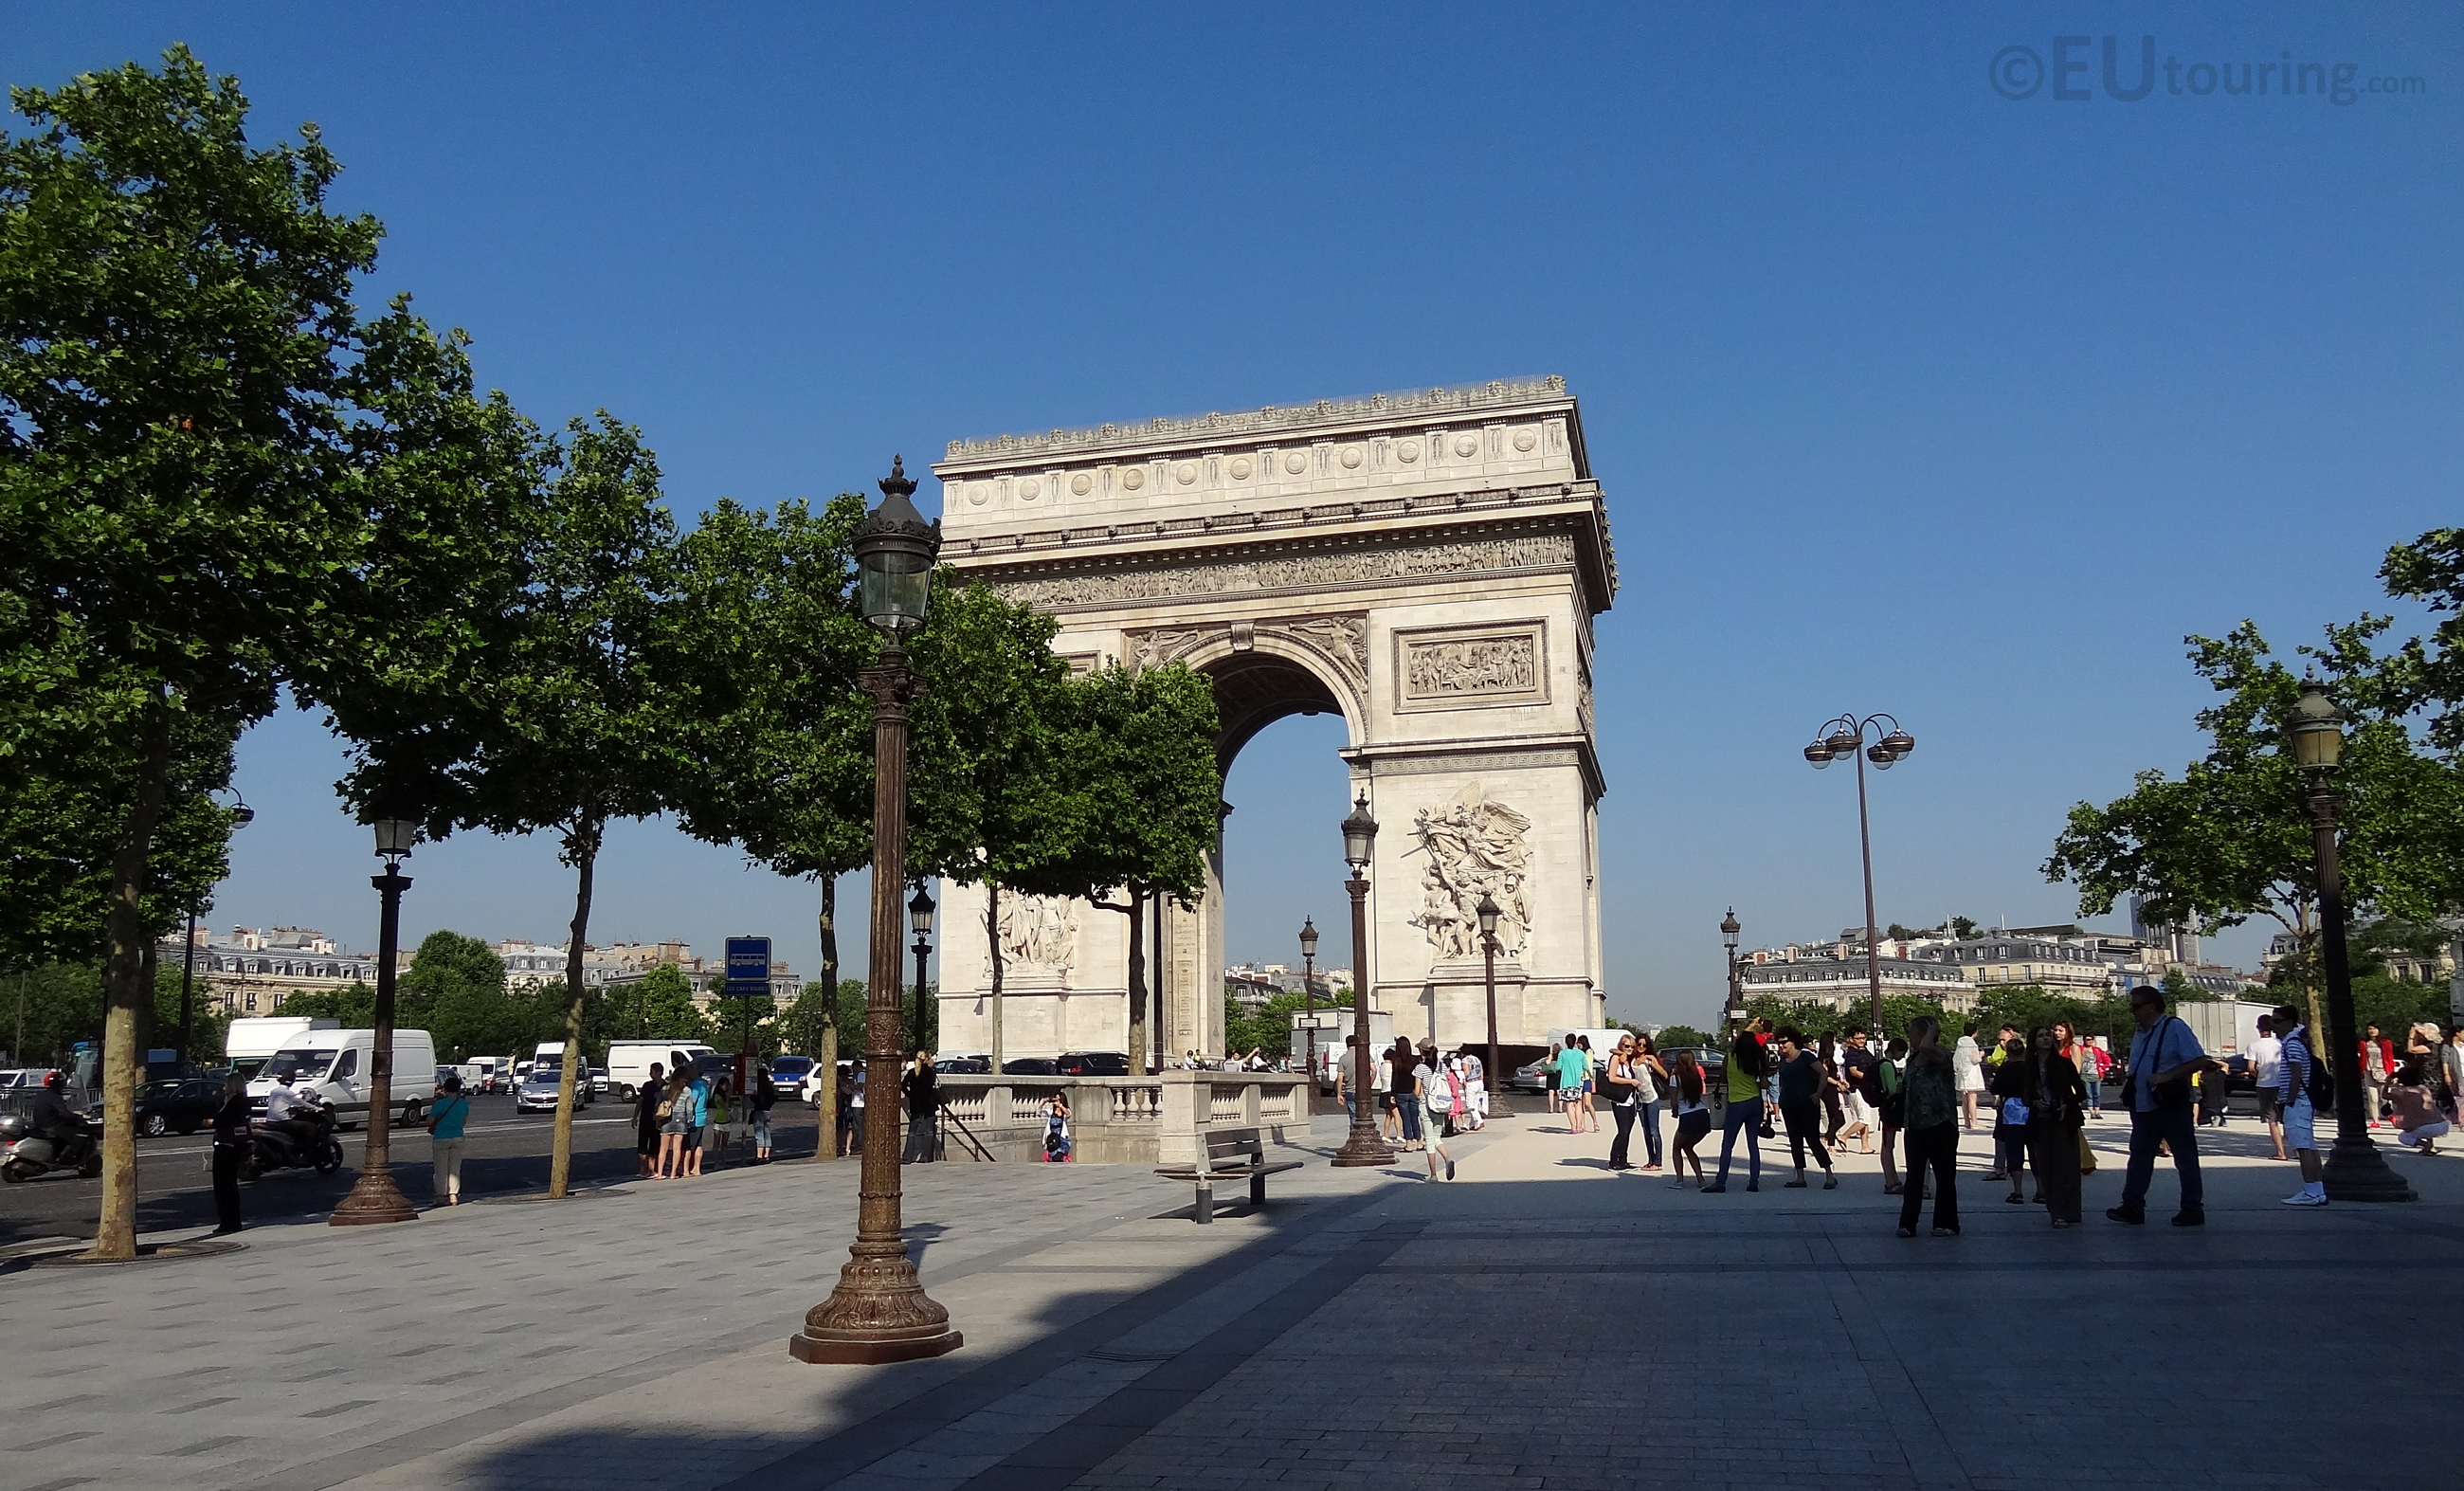 The end of the Champs Elysees at the Arc de Triomphe